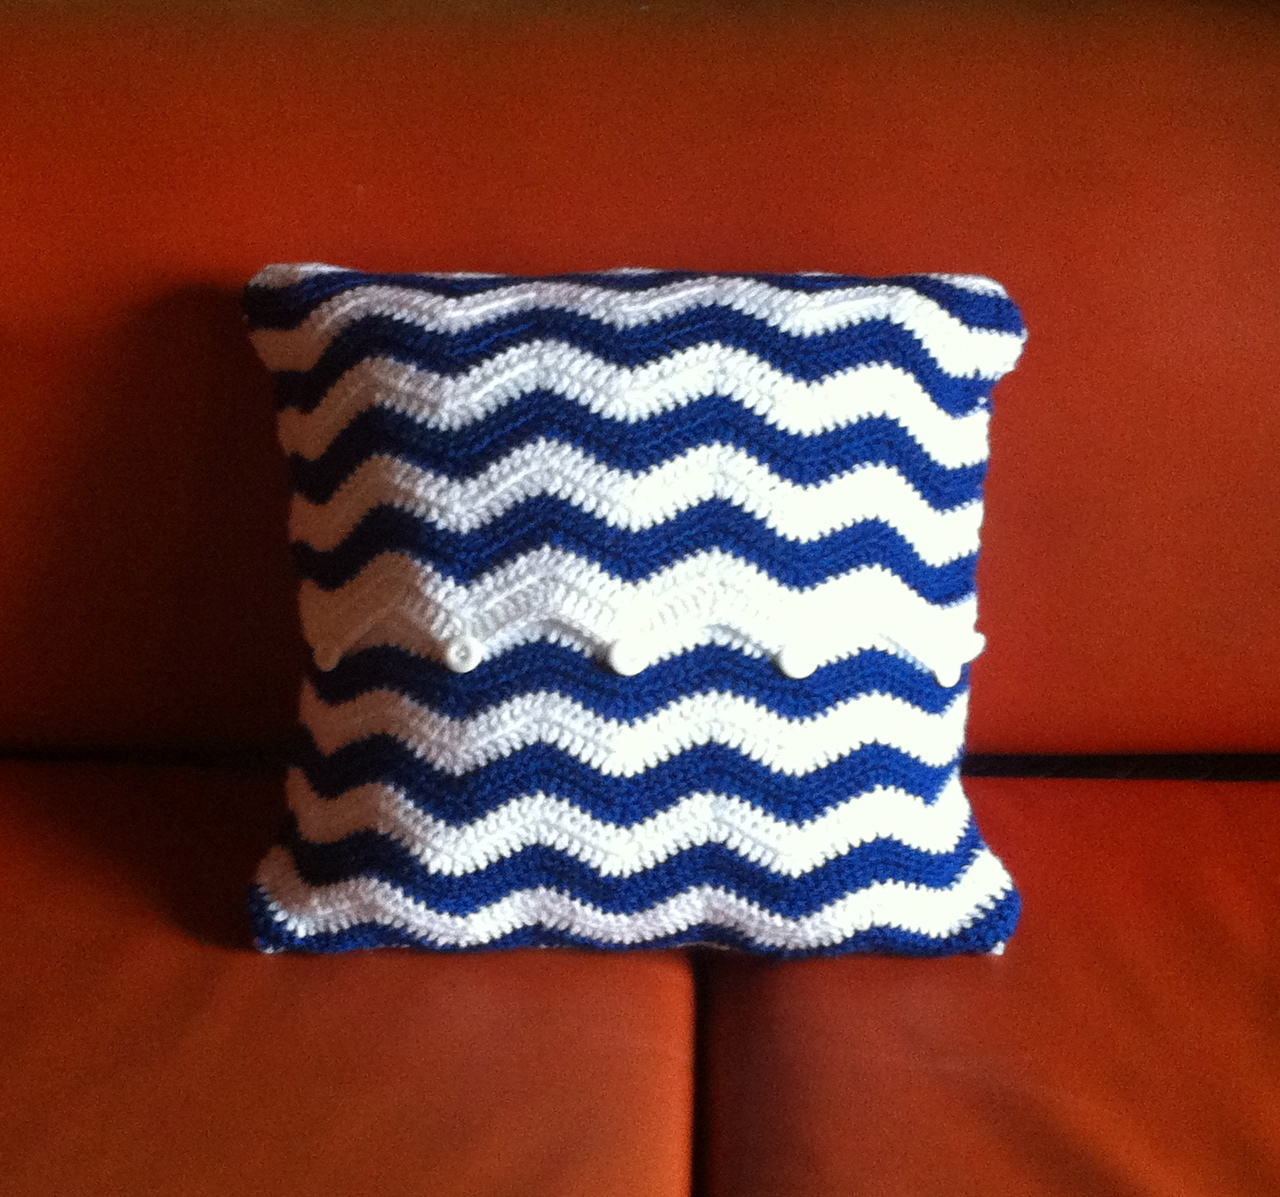 Crochet ripple cushion cover free pattern the way i crochet crochet ripple cushion cover free pattern dt1010fo